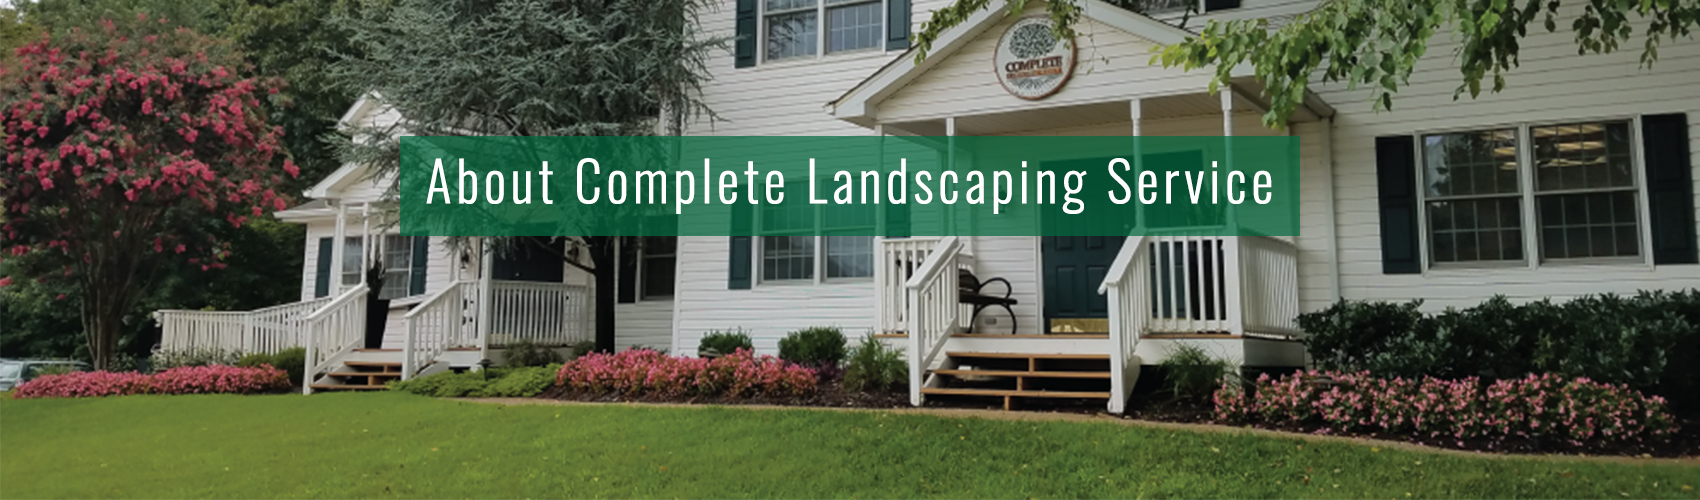 About Complete Landscaping Service- Serving Maryland, Virginia and DC